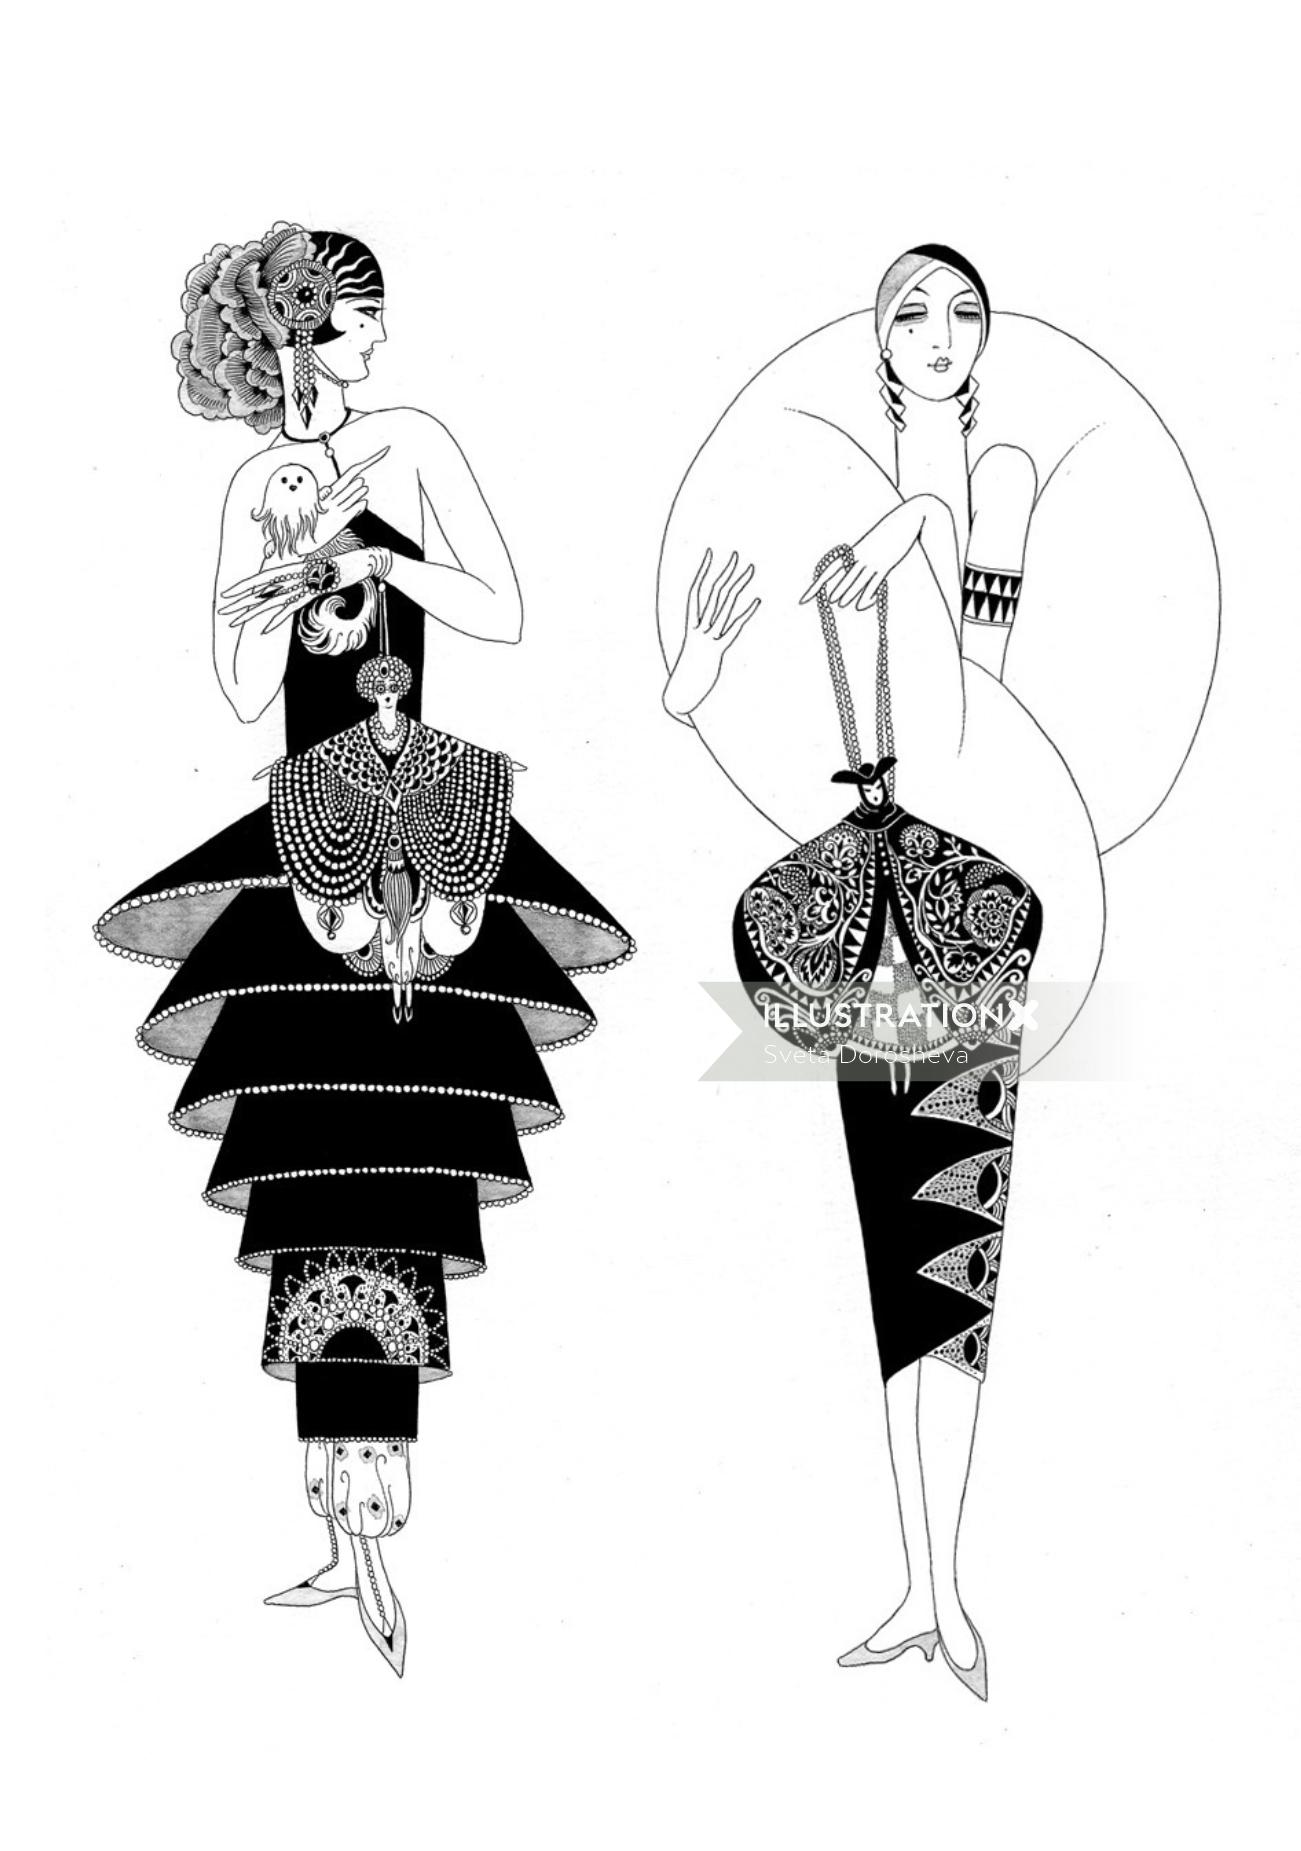 An illustration of lady in costume